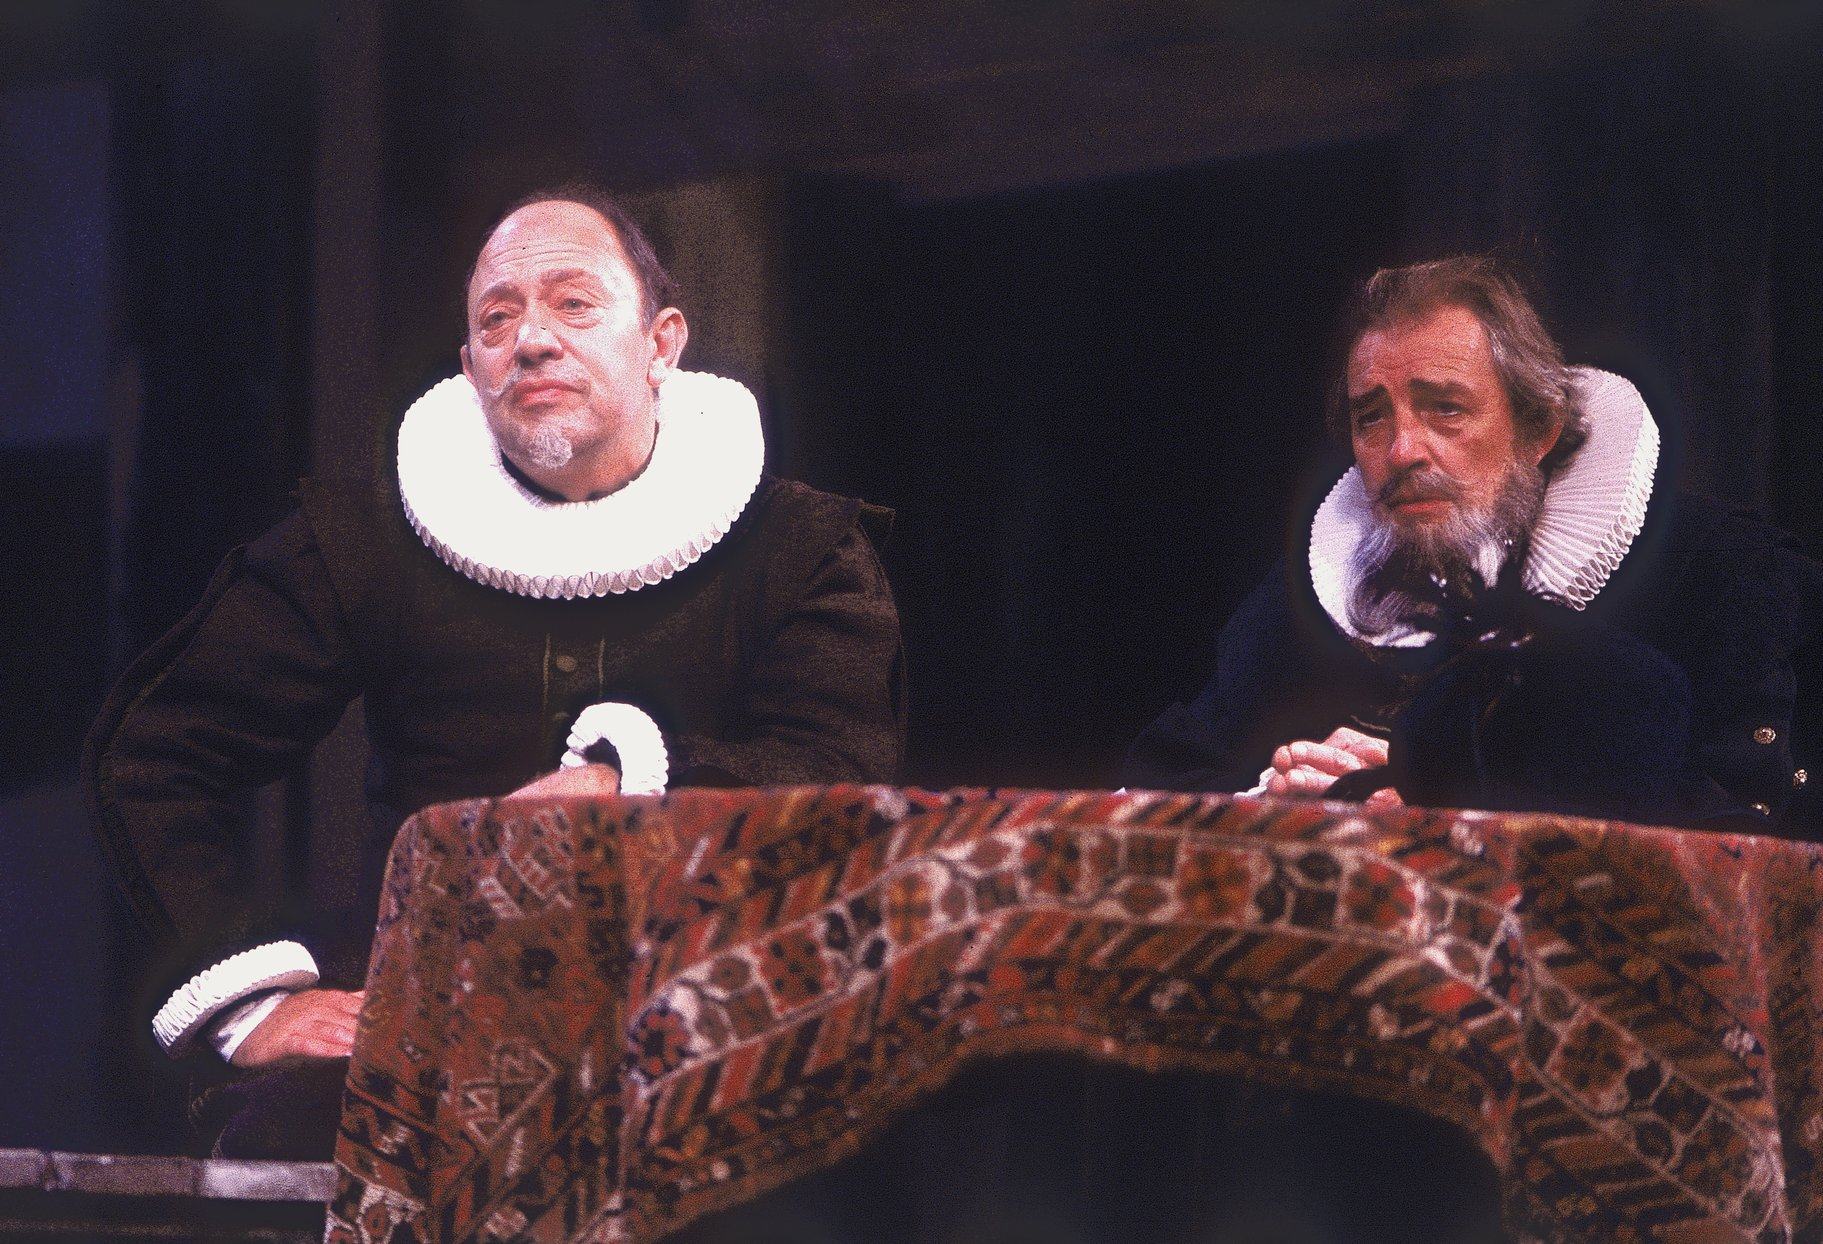 Baptista and Gremio in the 1988 production of The Taming of The Shrew